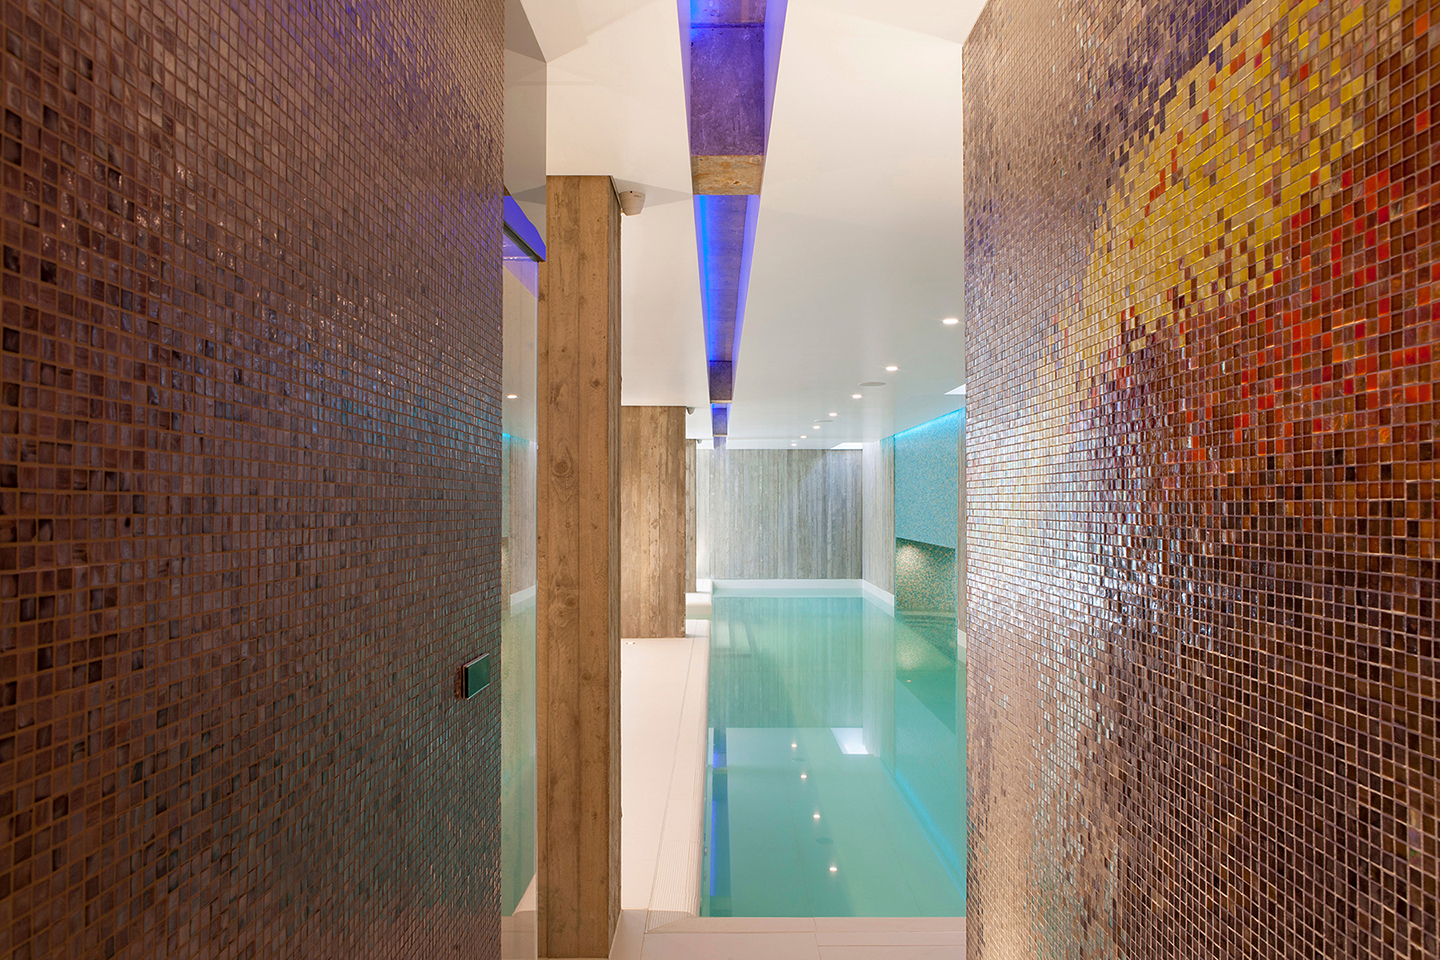 Inddor Pool, swimming pool, pool, luxury, house, architecture, interior